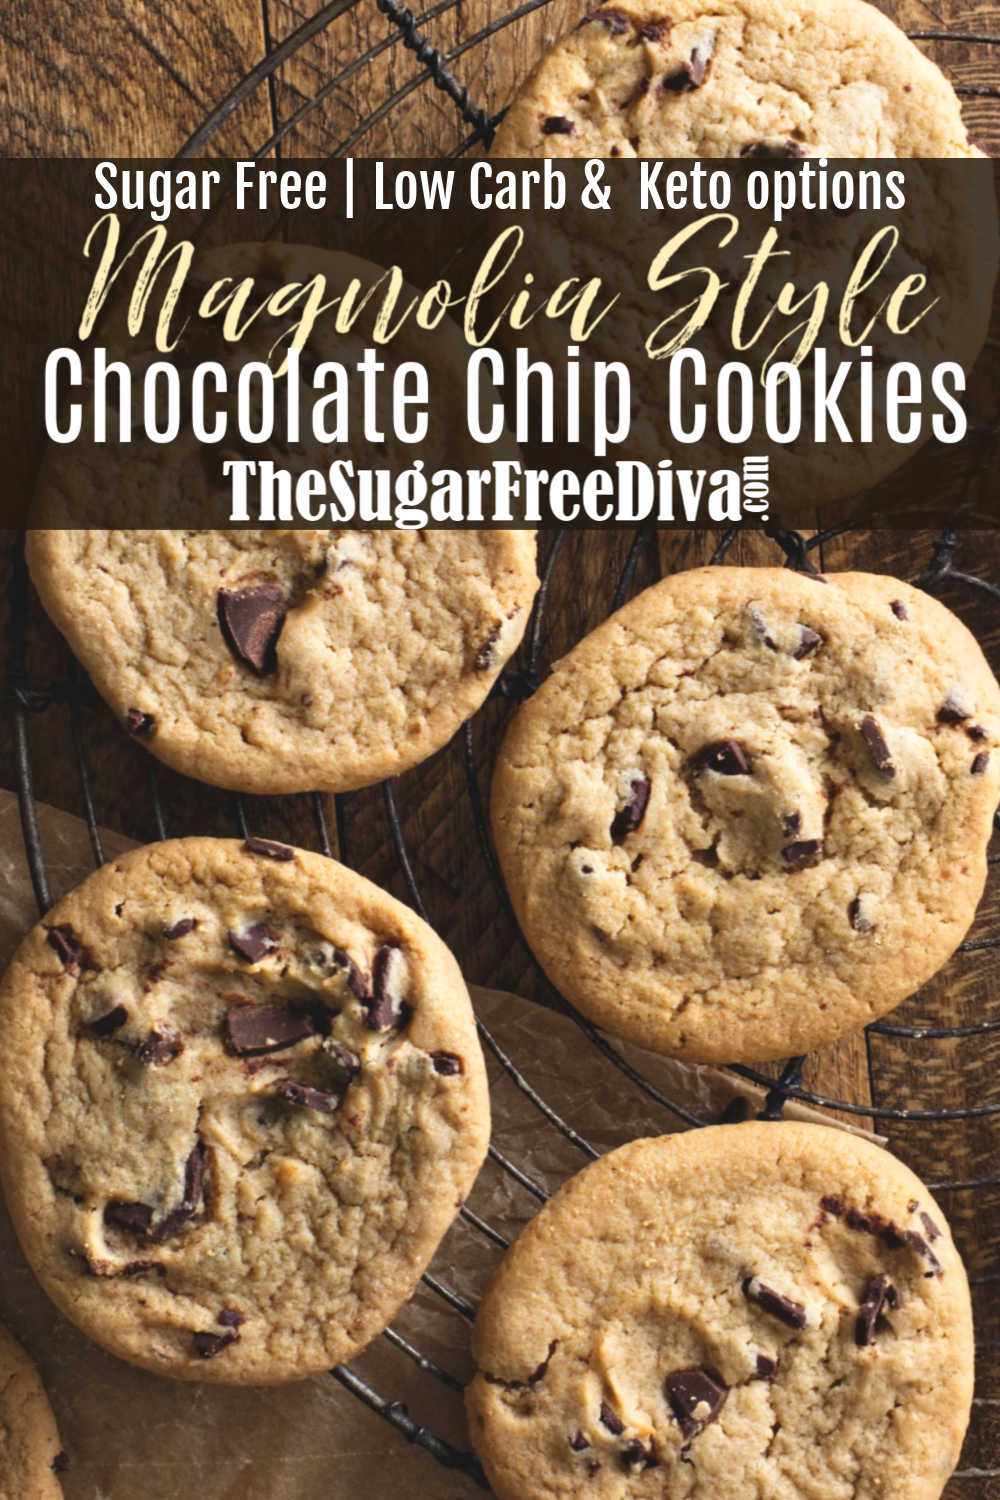 Sugar Free 'Magnolia' Style Chocolate Chip Cookies